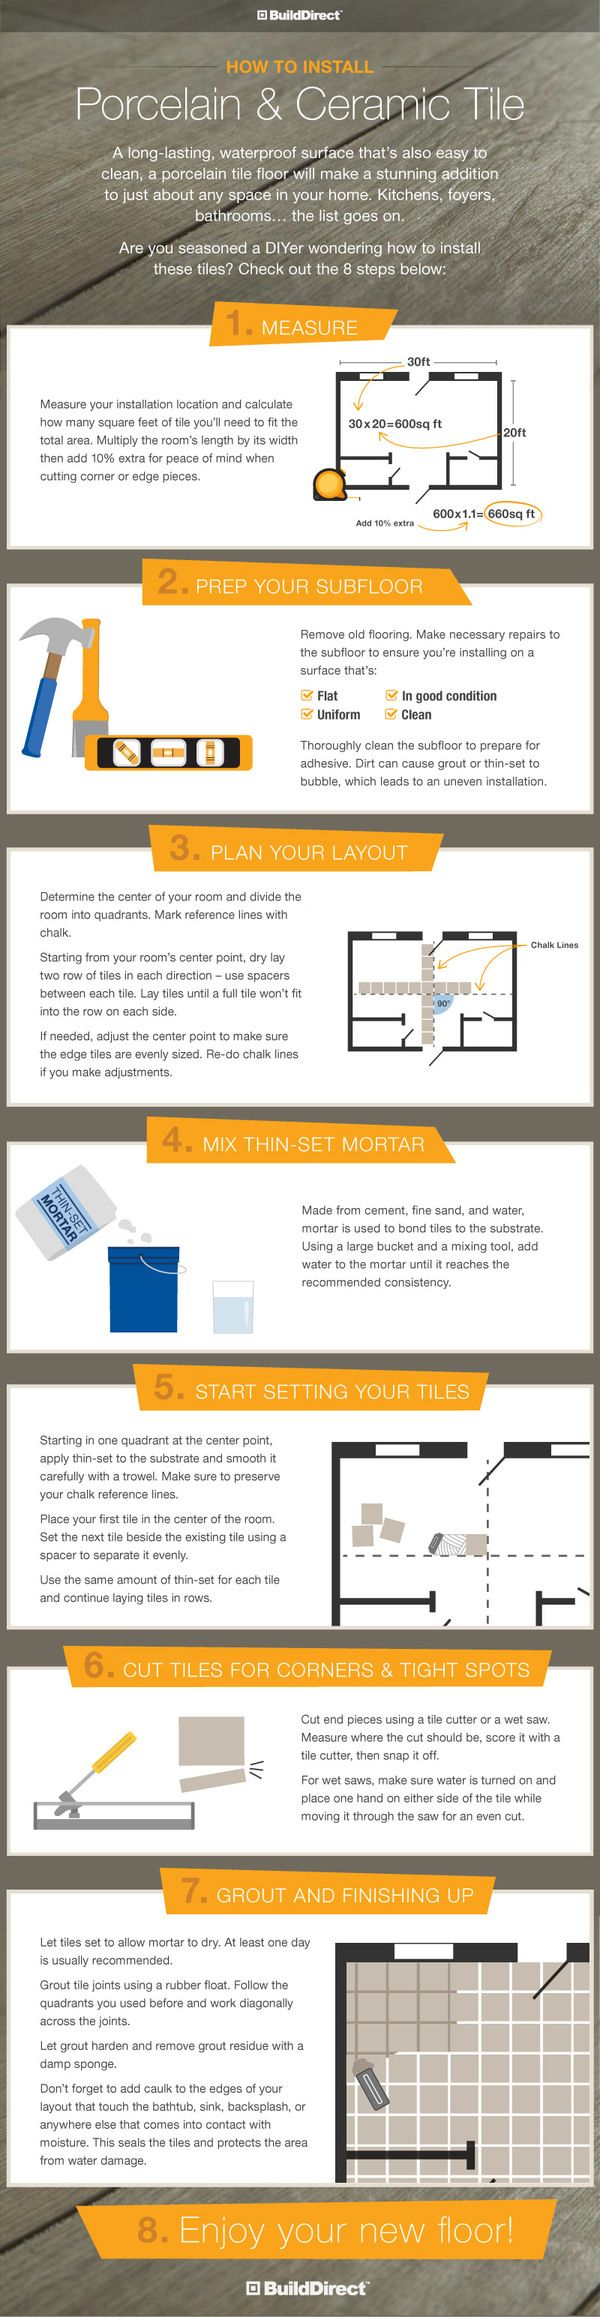 How to Install Porcelain and Ceramic Tile